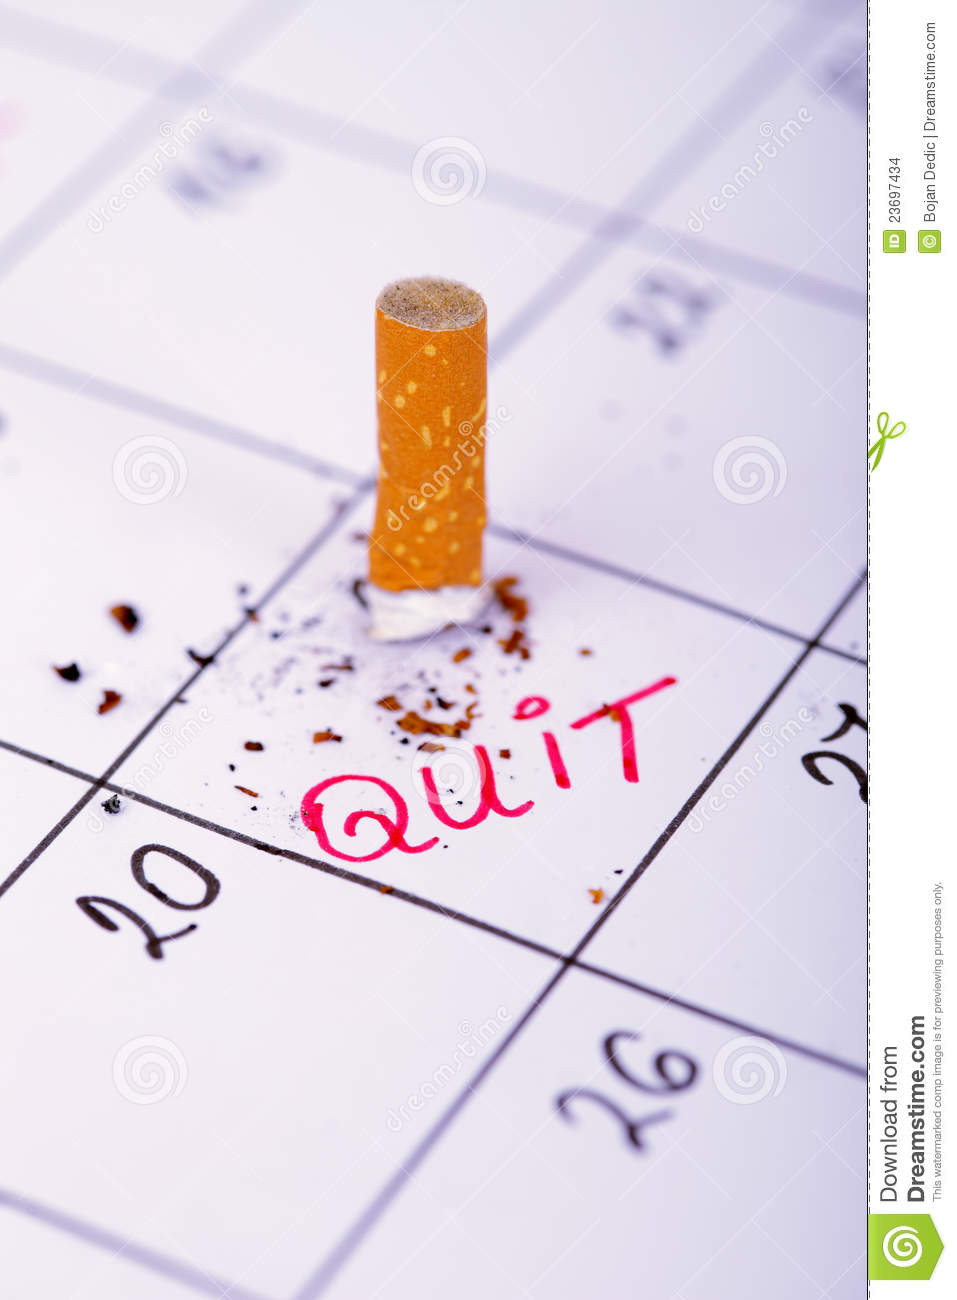 Editorial Calendar Design : Day when i will quit smoking stock images image